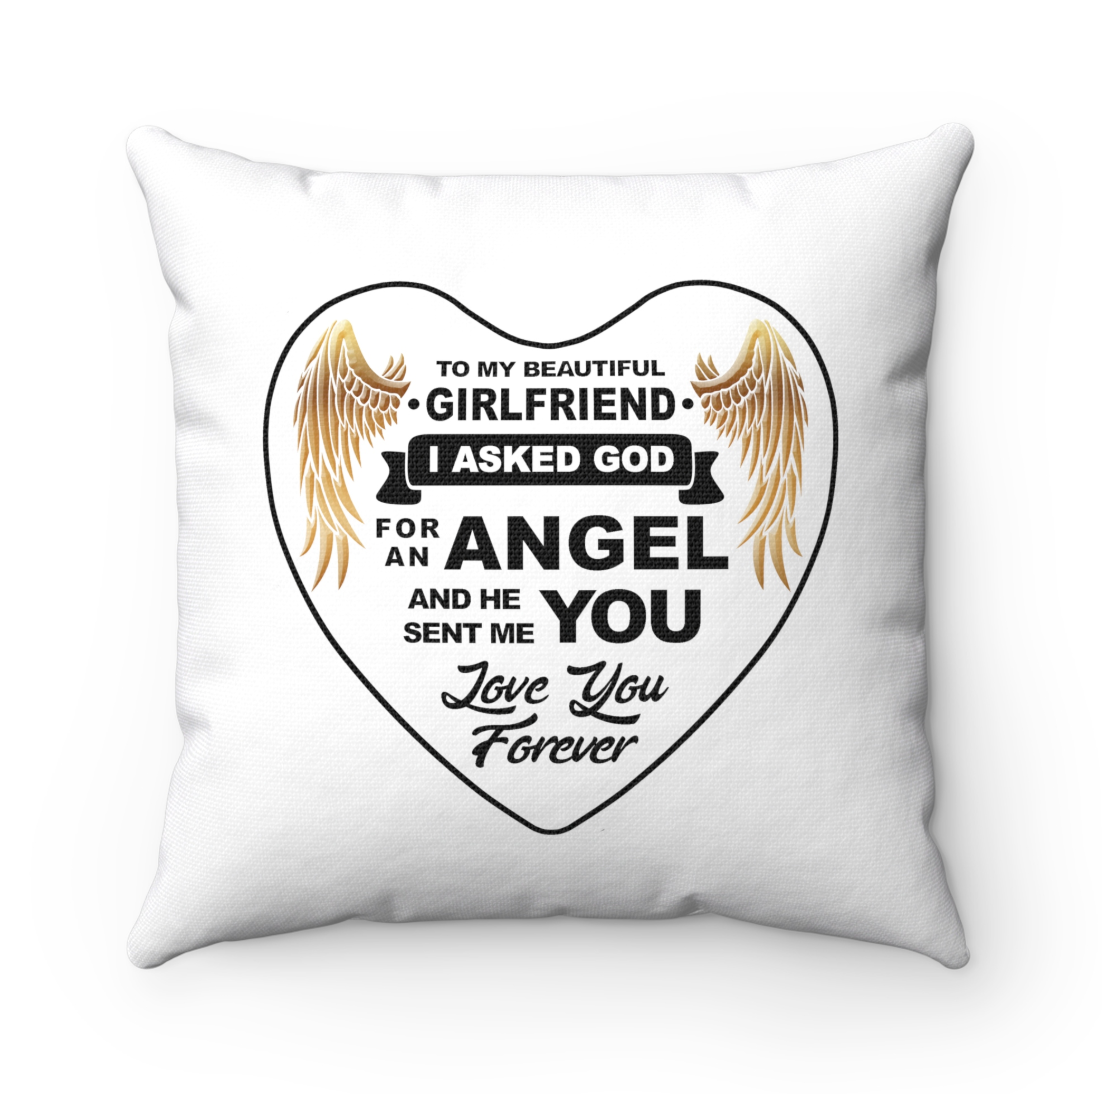 To My Girlfriend - God Sent Me You Pillow